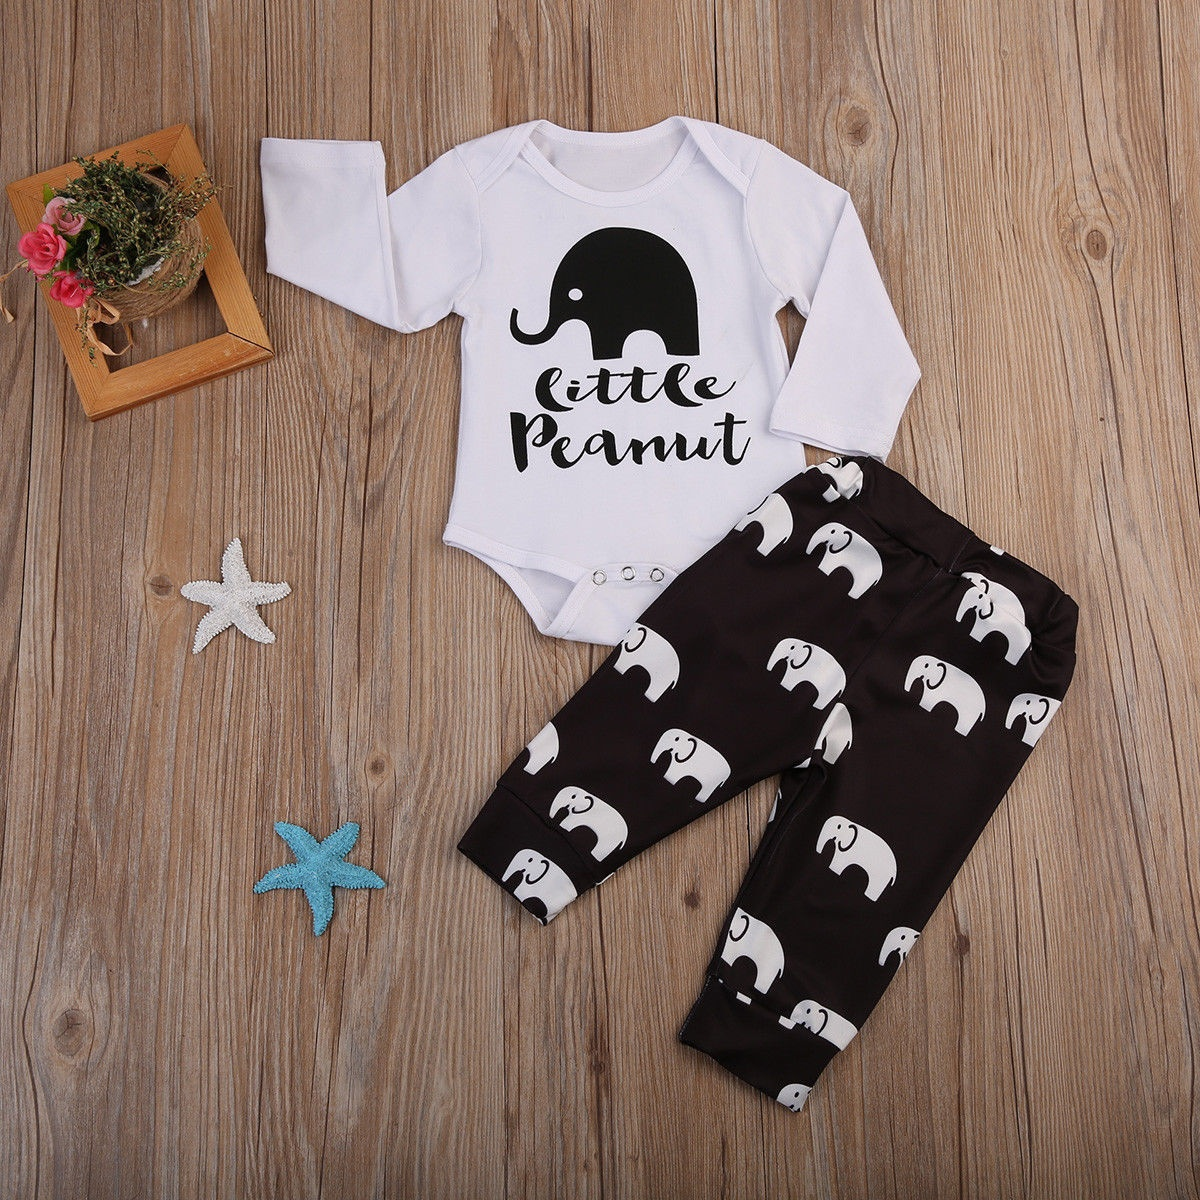 Newborn Infant Baby Boys Girls Little Peanut Romper Long Pants Outfits Clothes